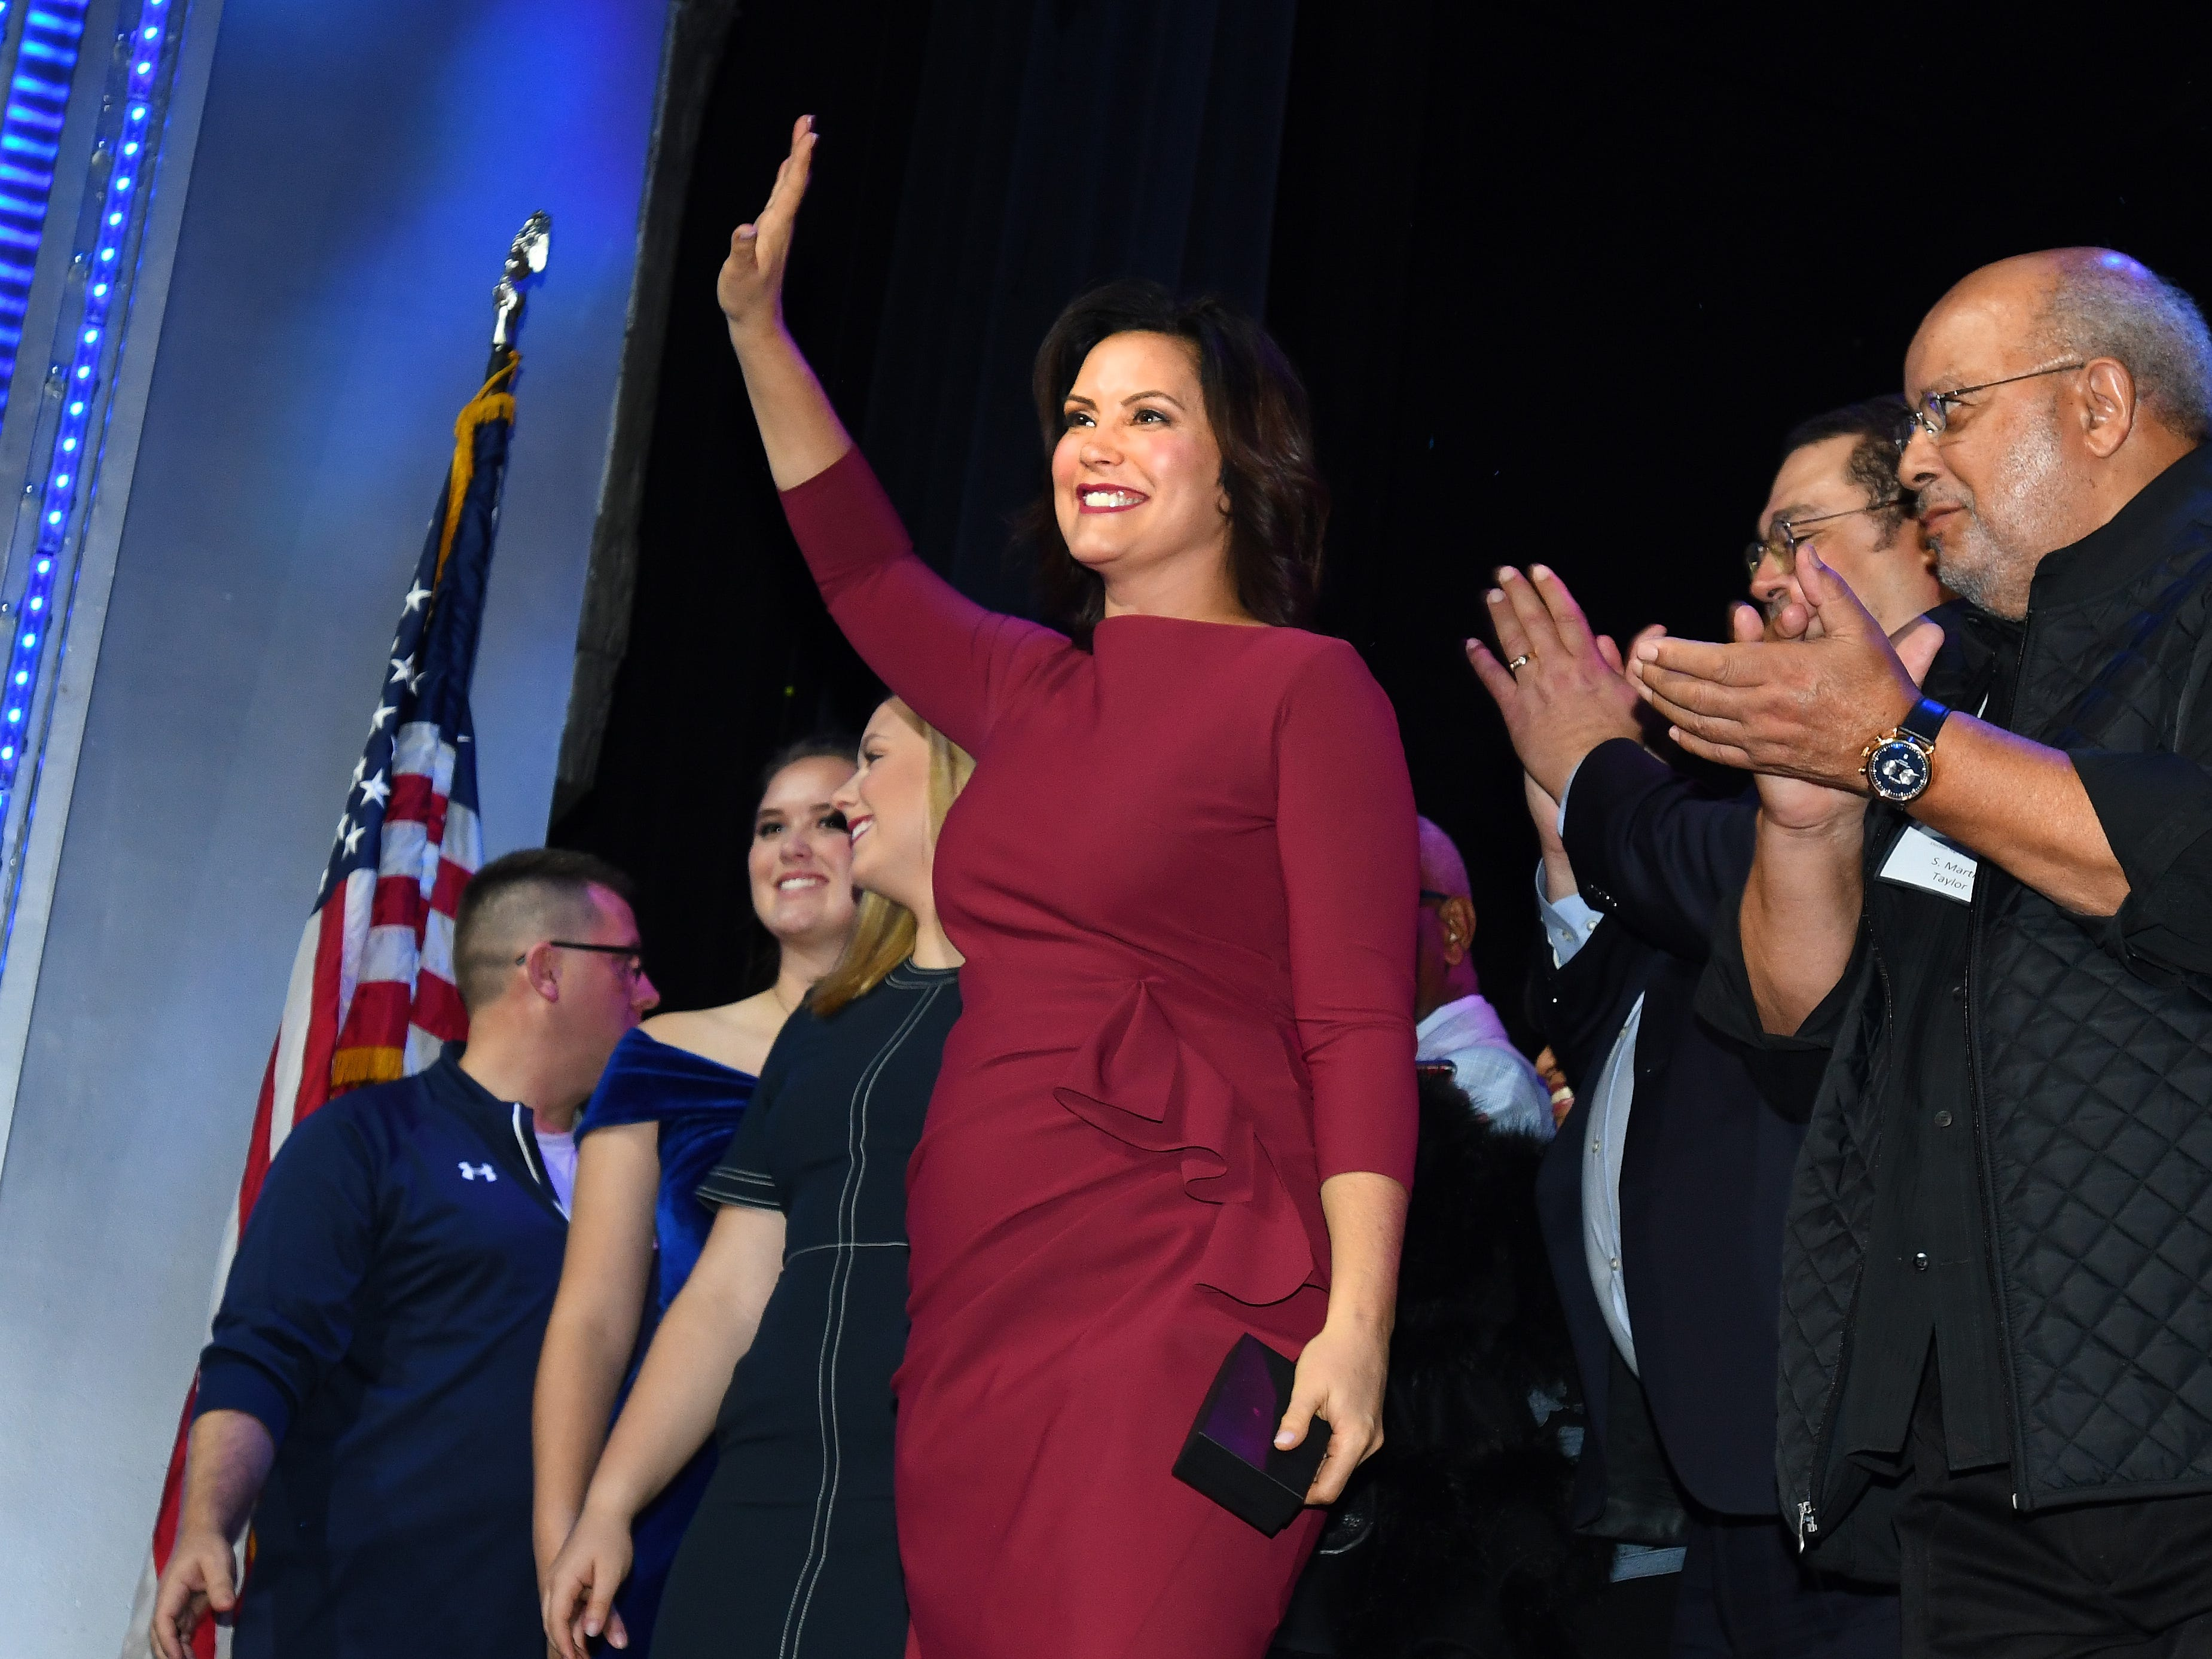 Michigan governor-elect Gretchen Whitmer waves to her supporters with other Democratic Party candidates at the Sound Board theater in the MotorCity Casino in Detroit, Tuesday night.